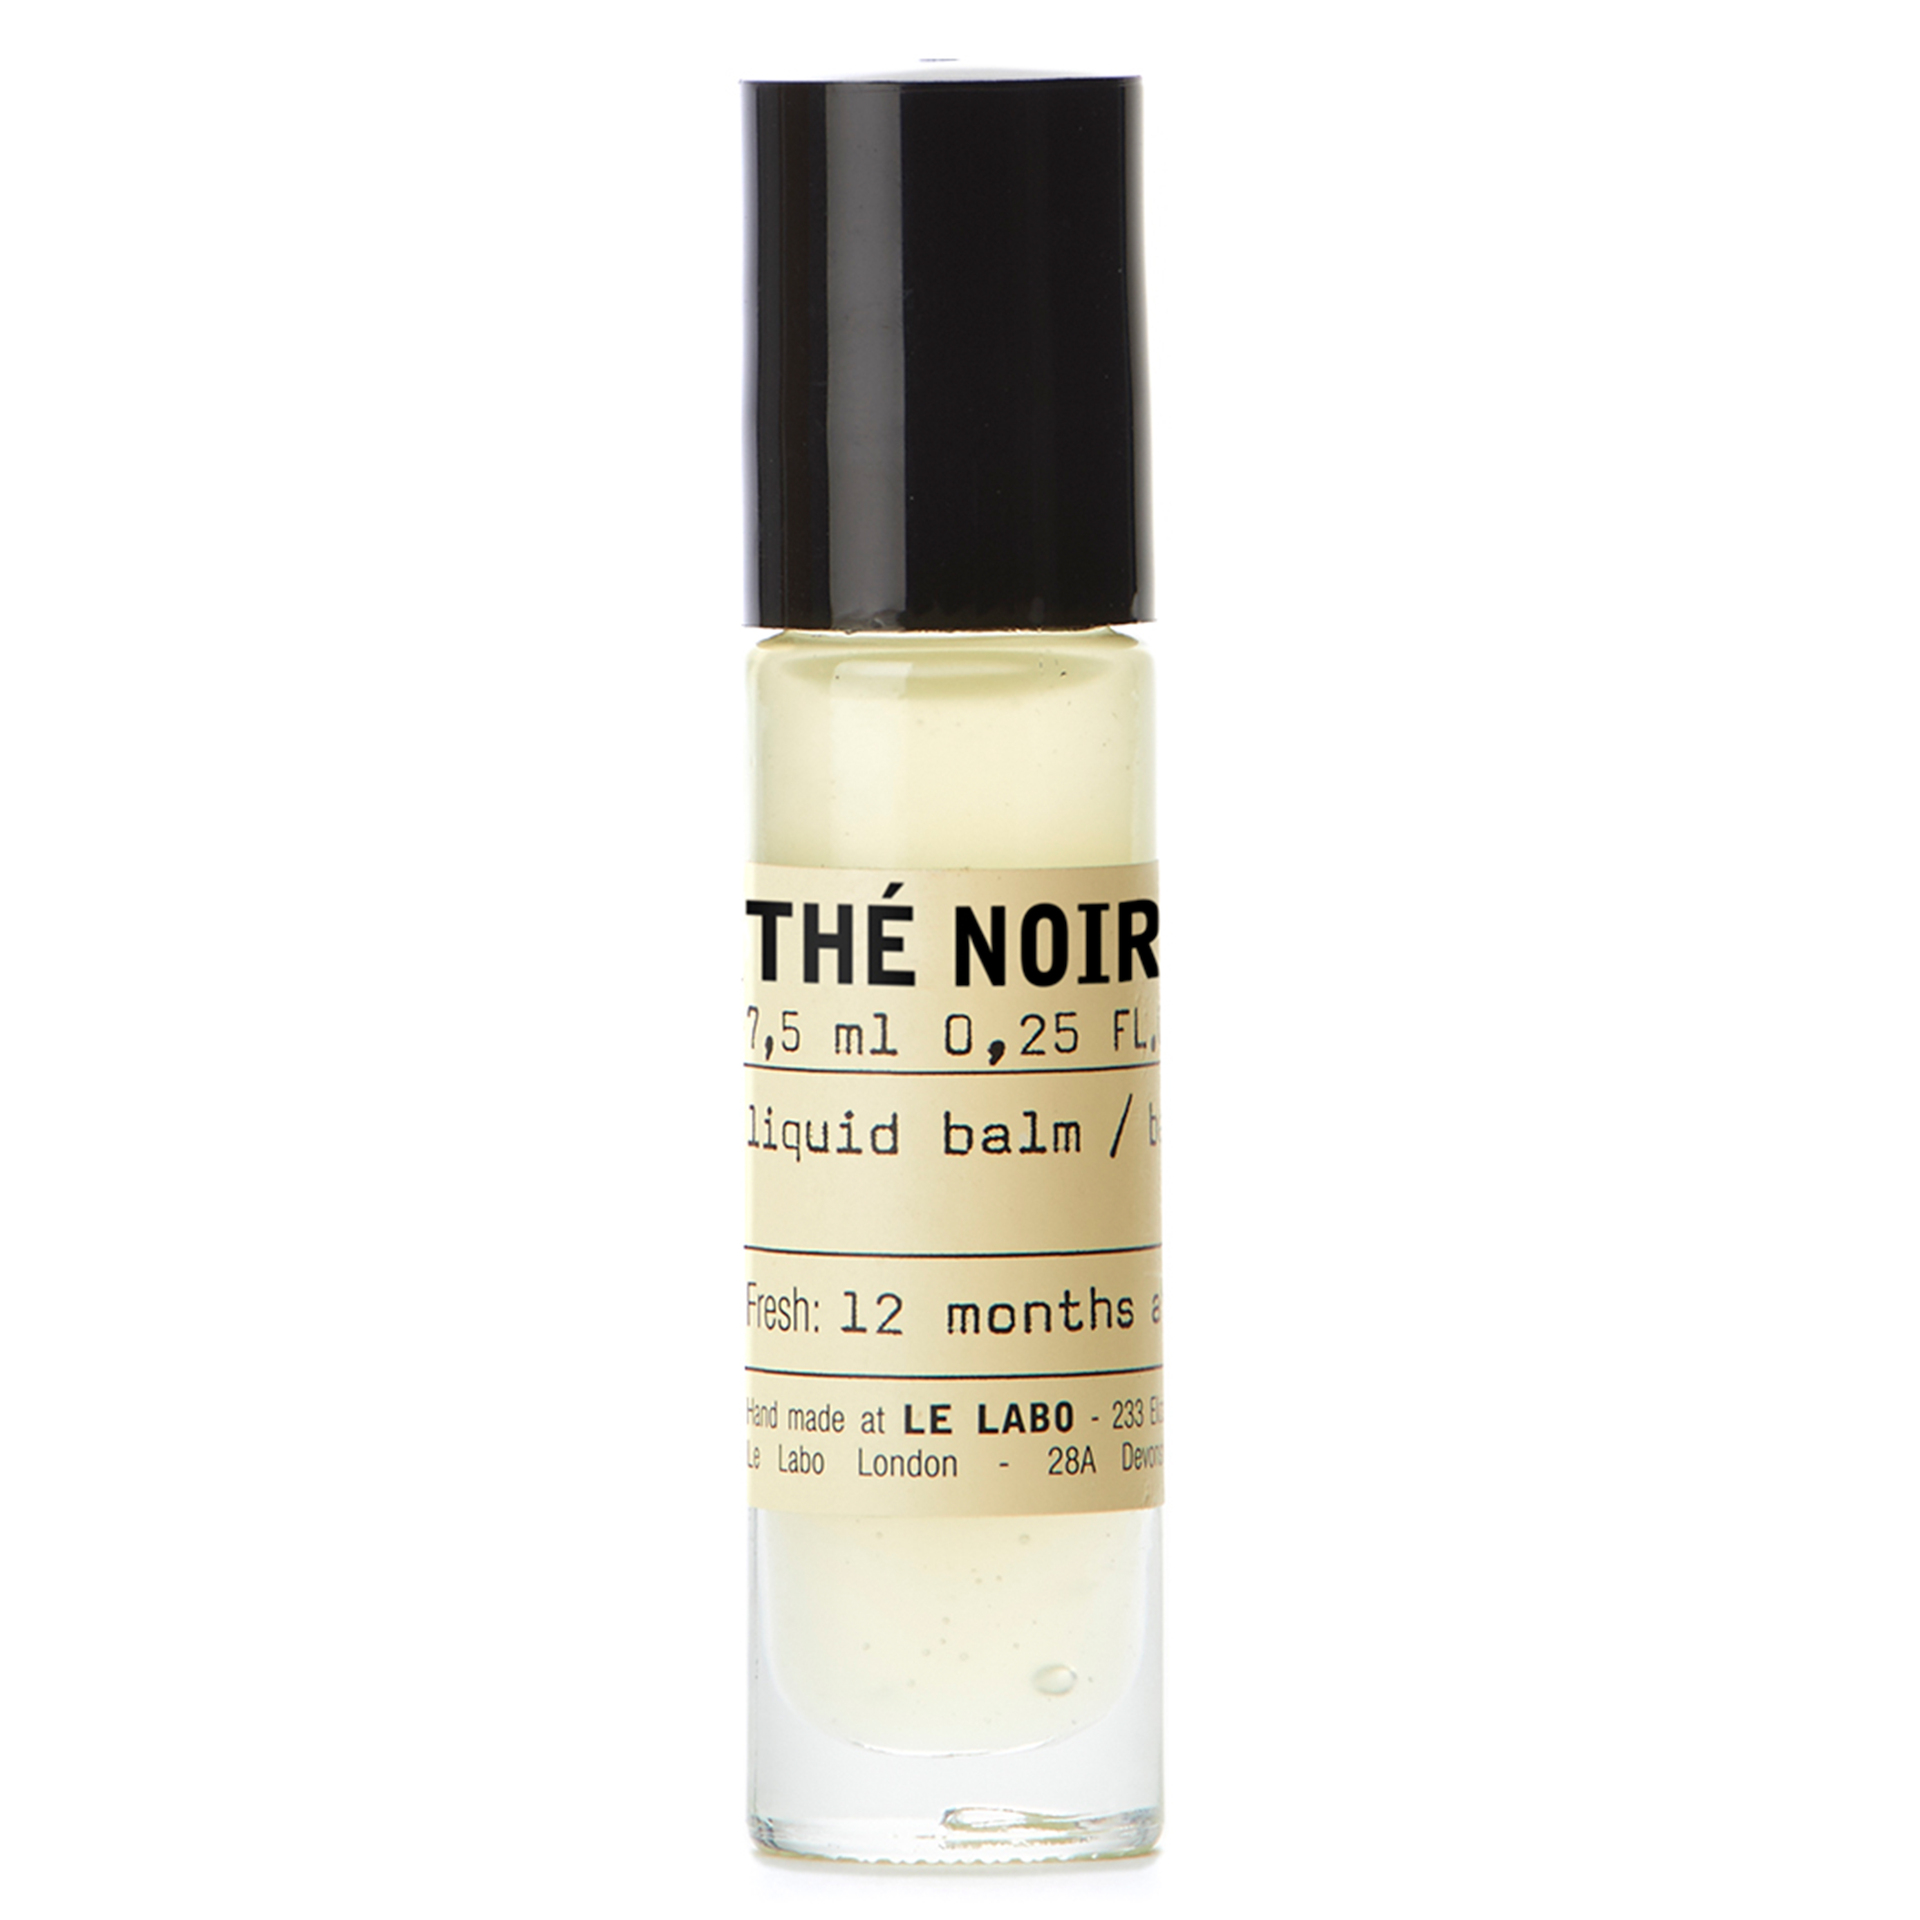 The Noir 29 Liquid Balm